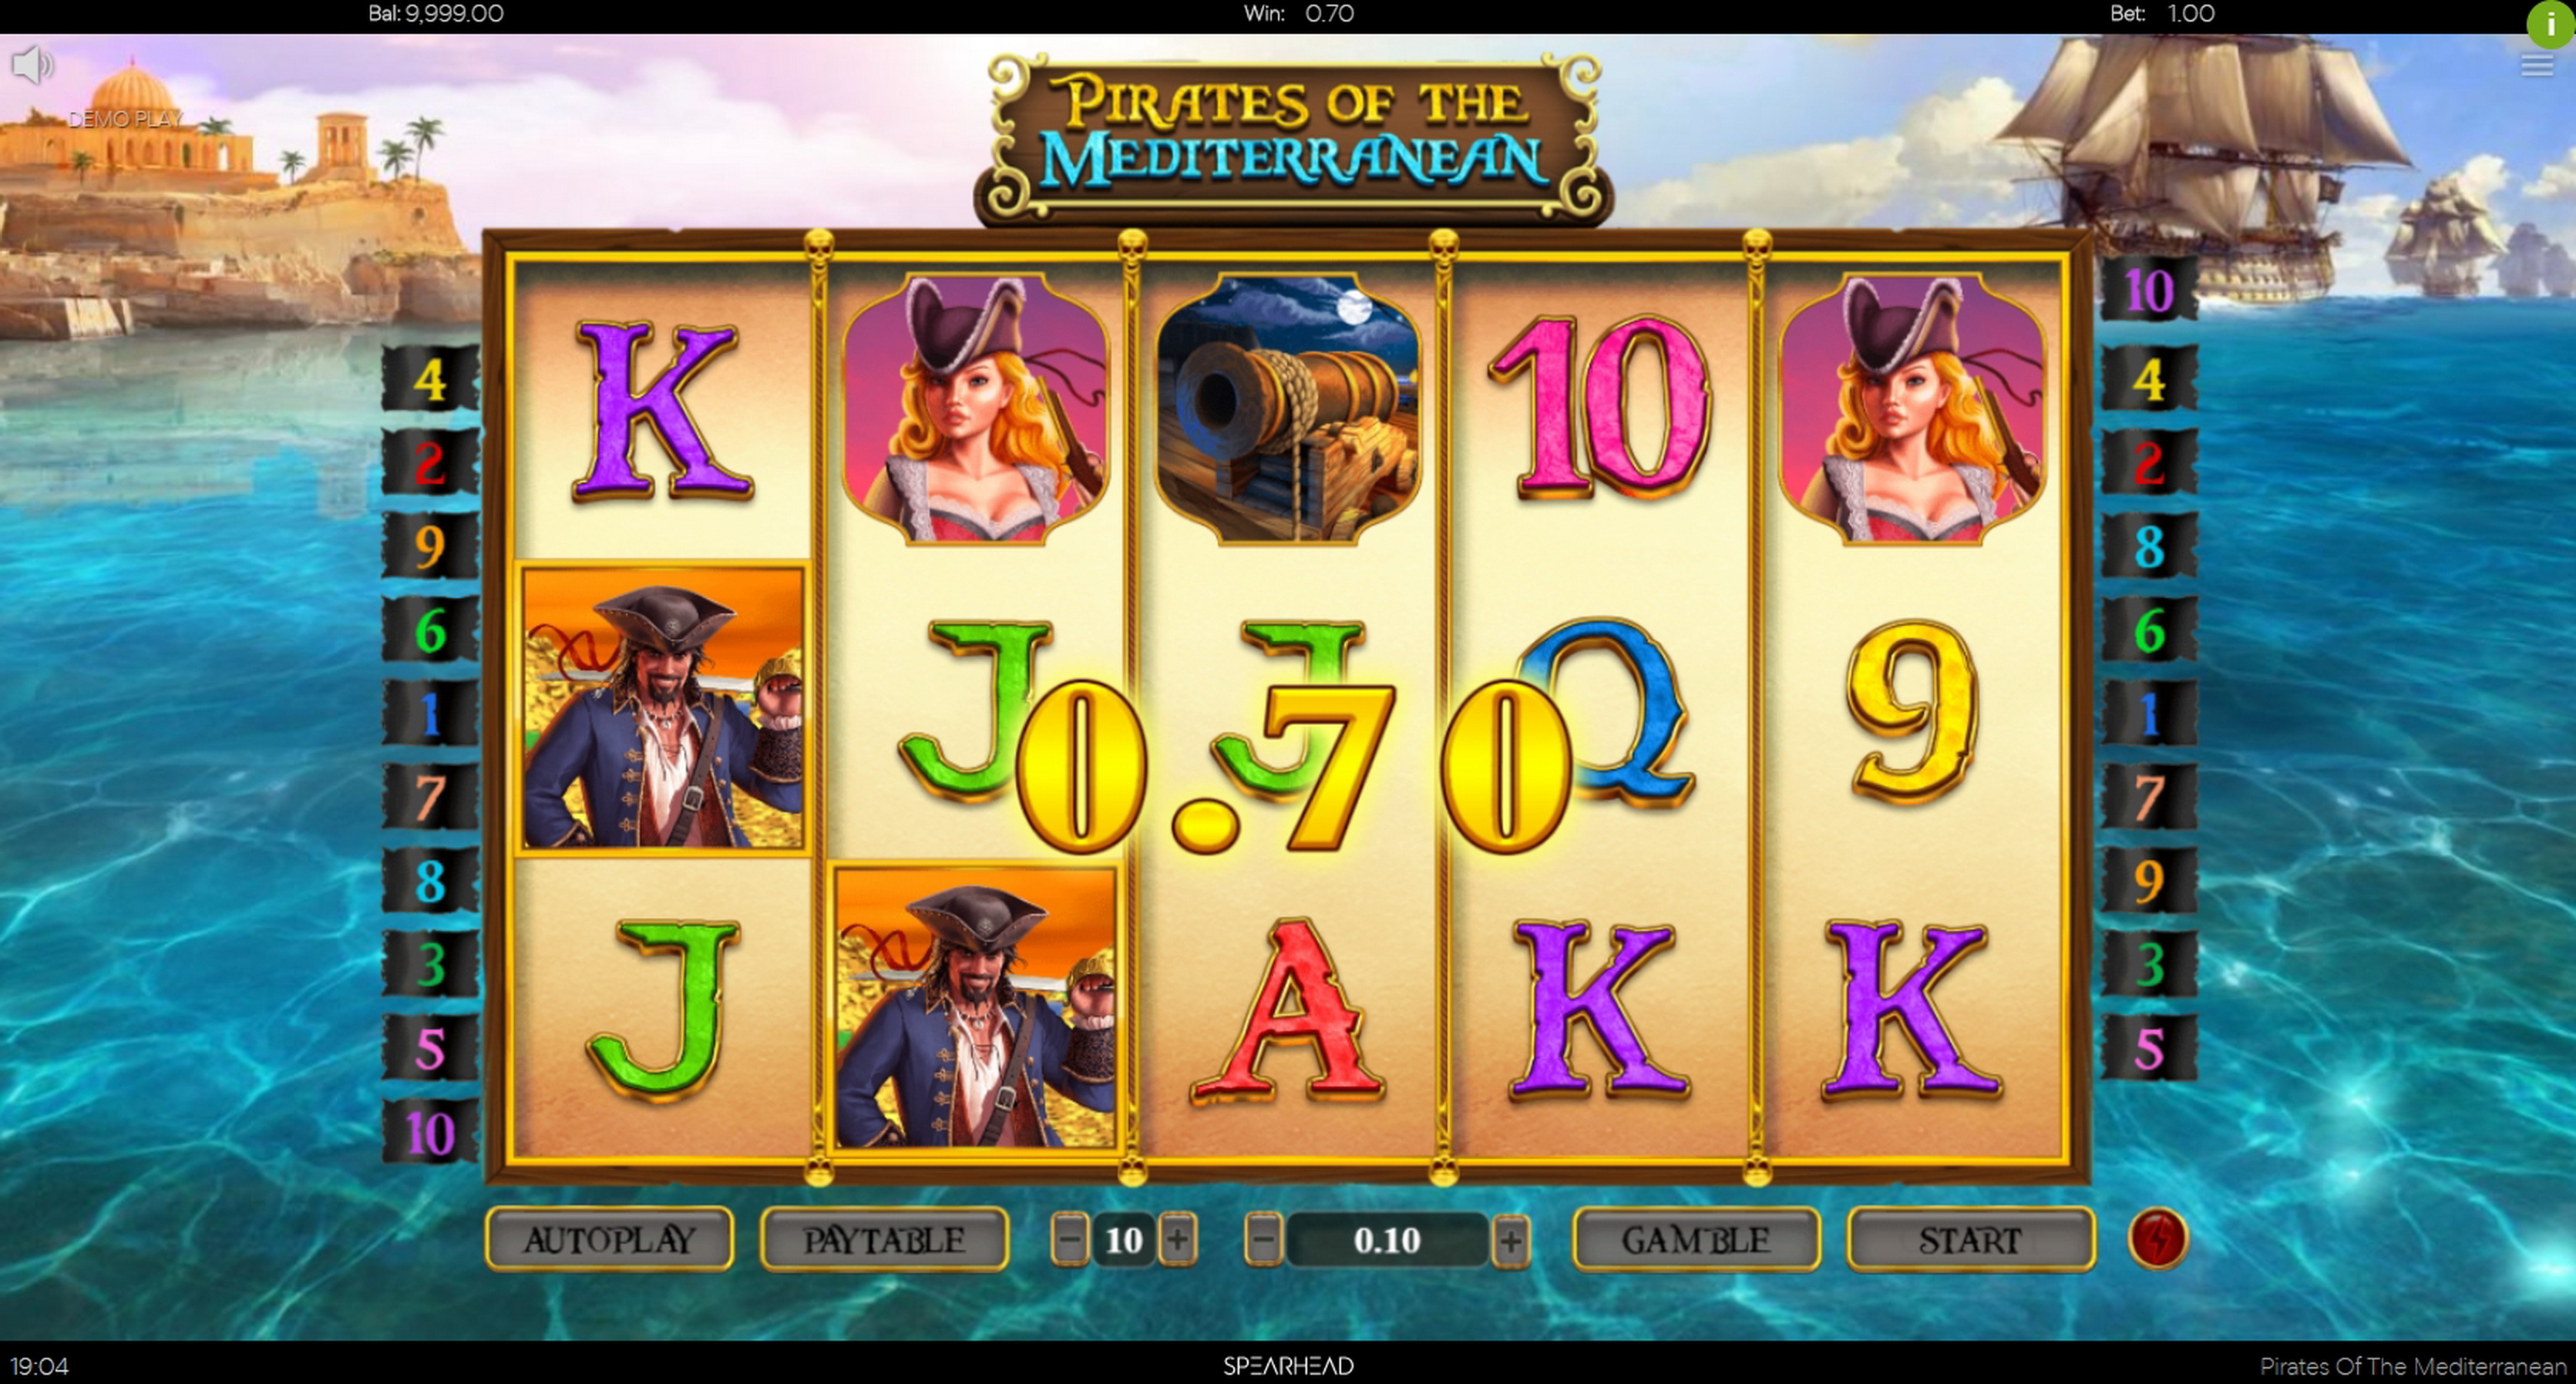 Win Money in Pirates Of The Mediterranean Free Slot Game by Spearhead Studios